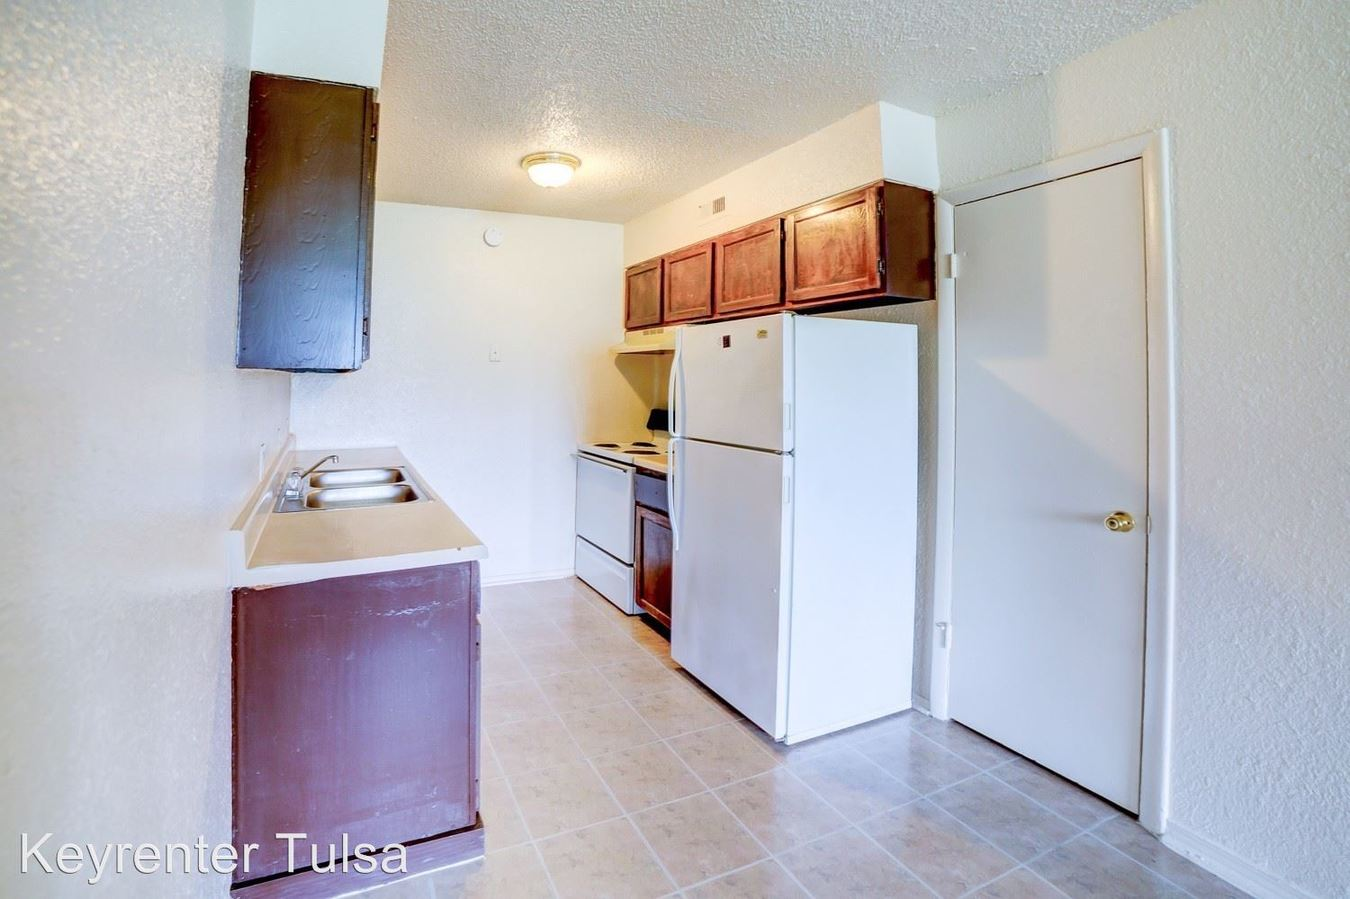 2 Bedrooms 1 Bathroom Apartment for rent at 444 South Mingo Road in Tulsa, OK